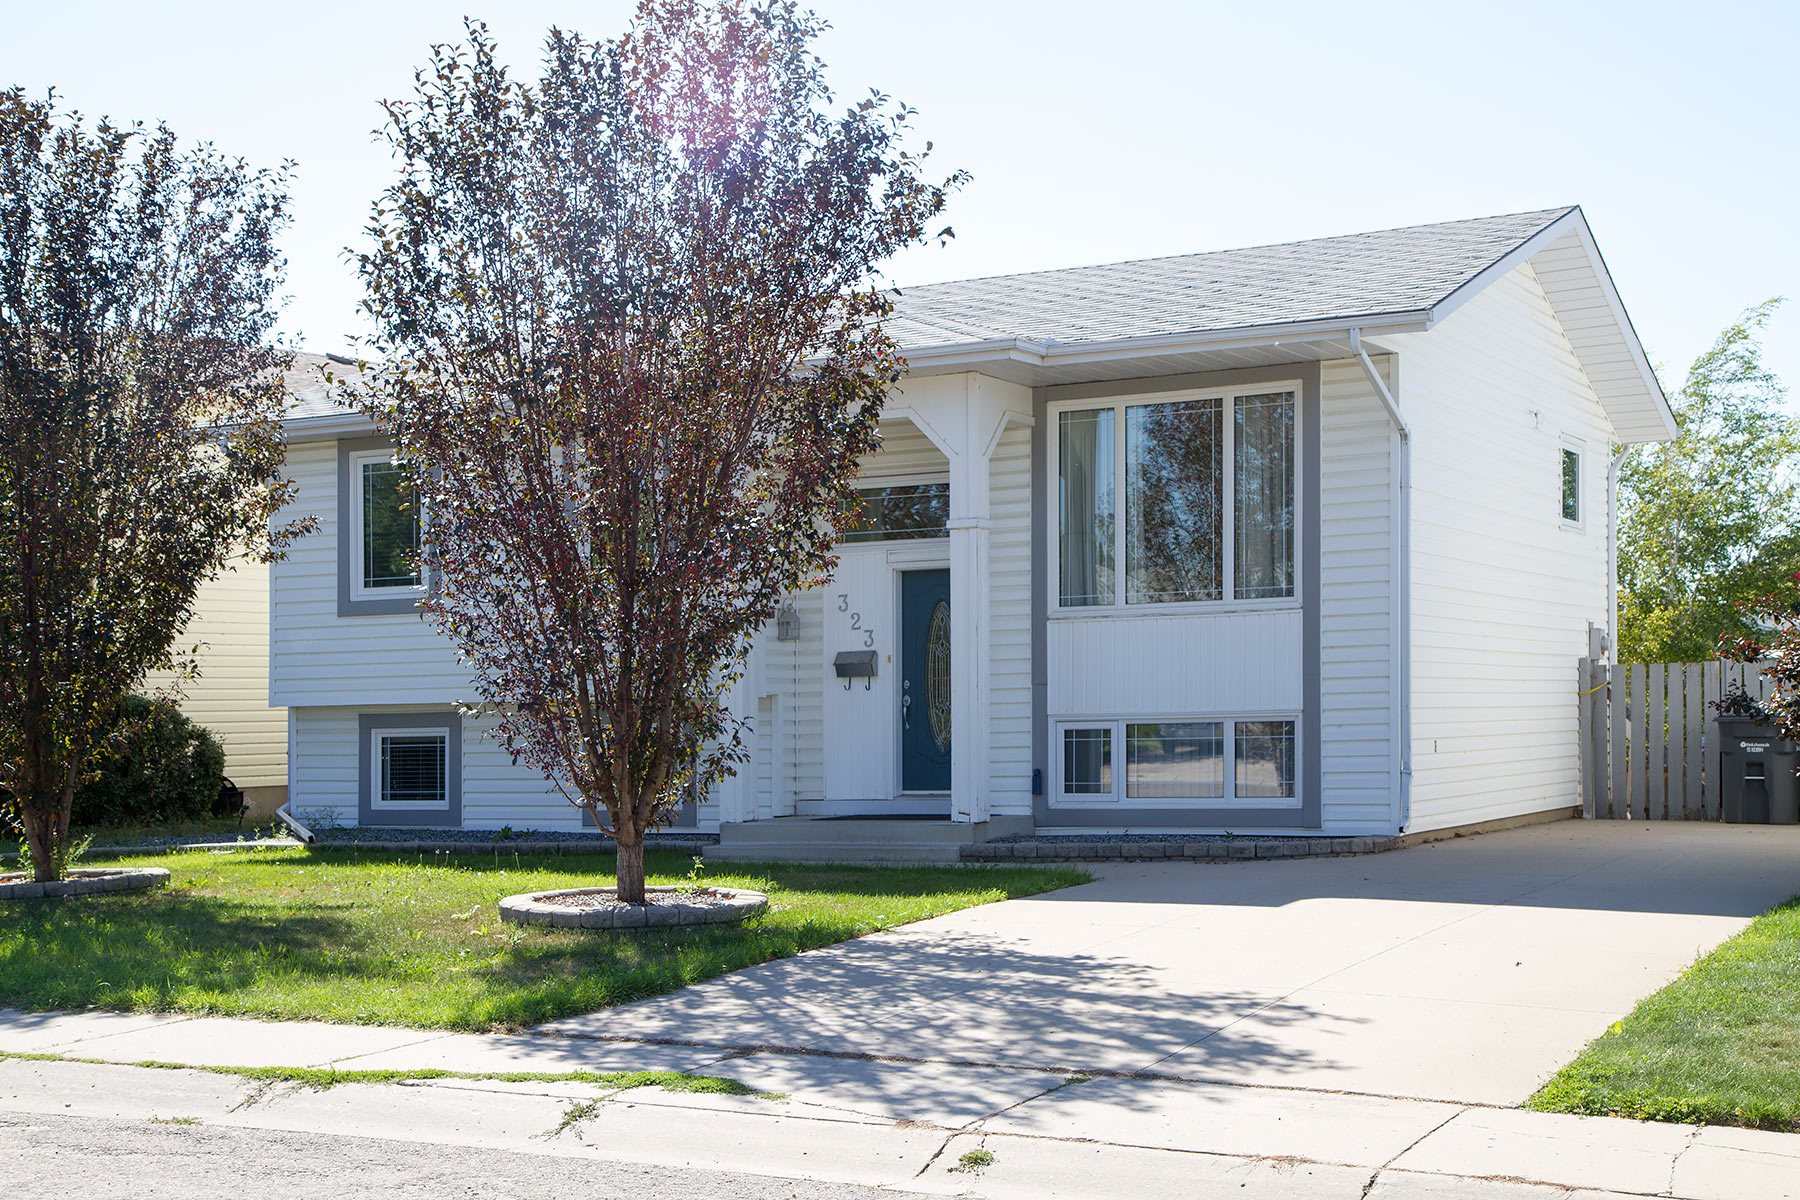 Main Photo: 323 George Road in Saskatoon: Dundonald Residential for sale : MLS® # SK710836